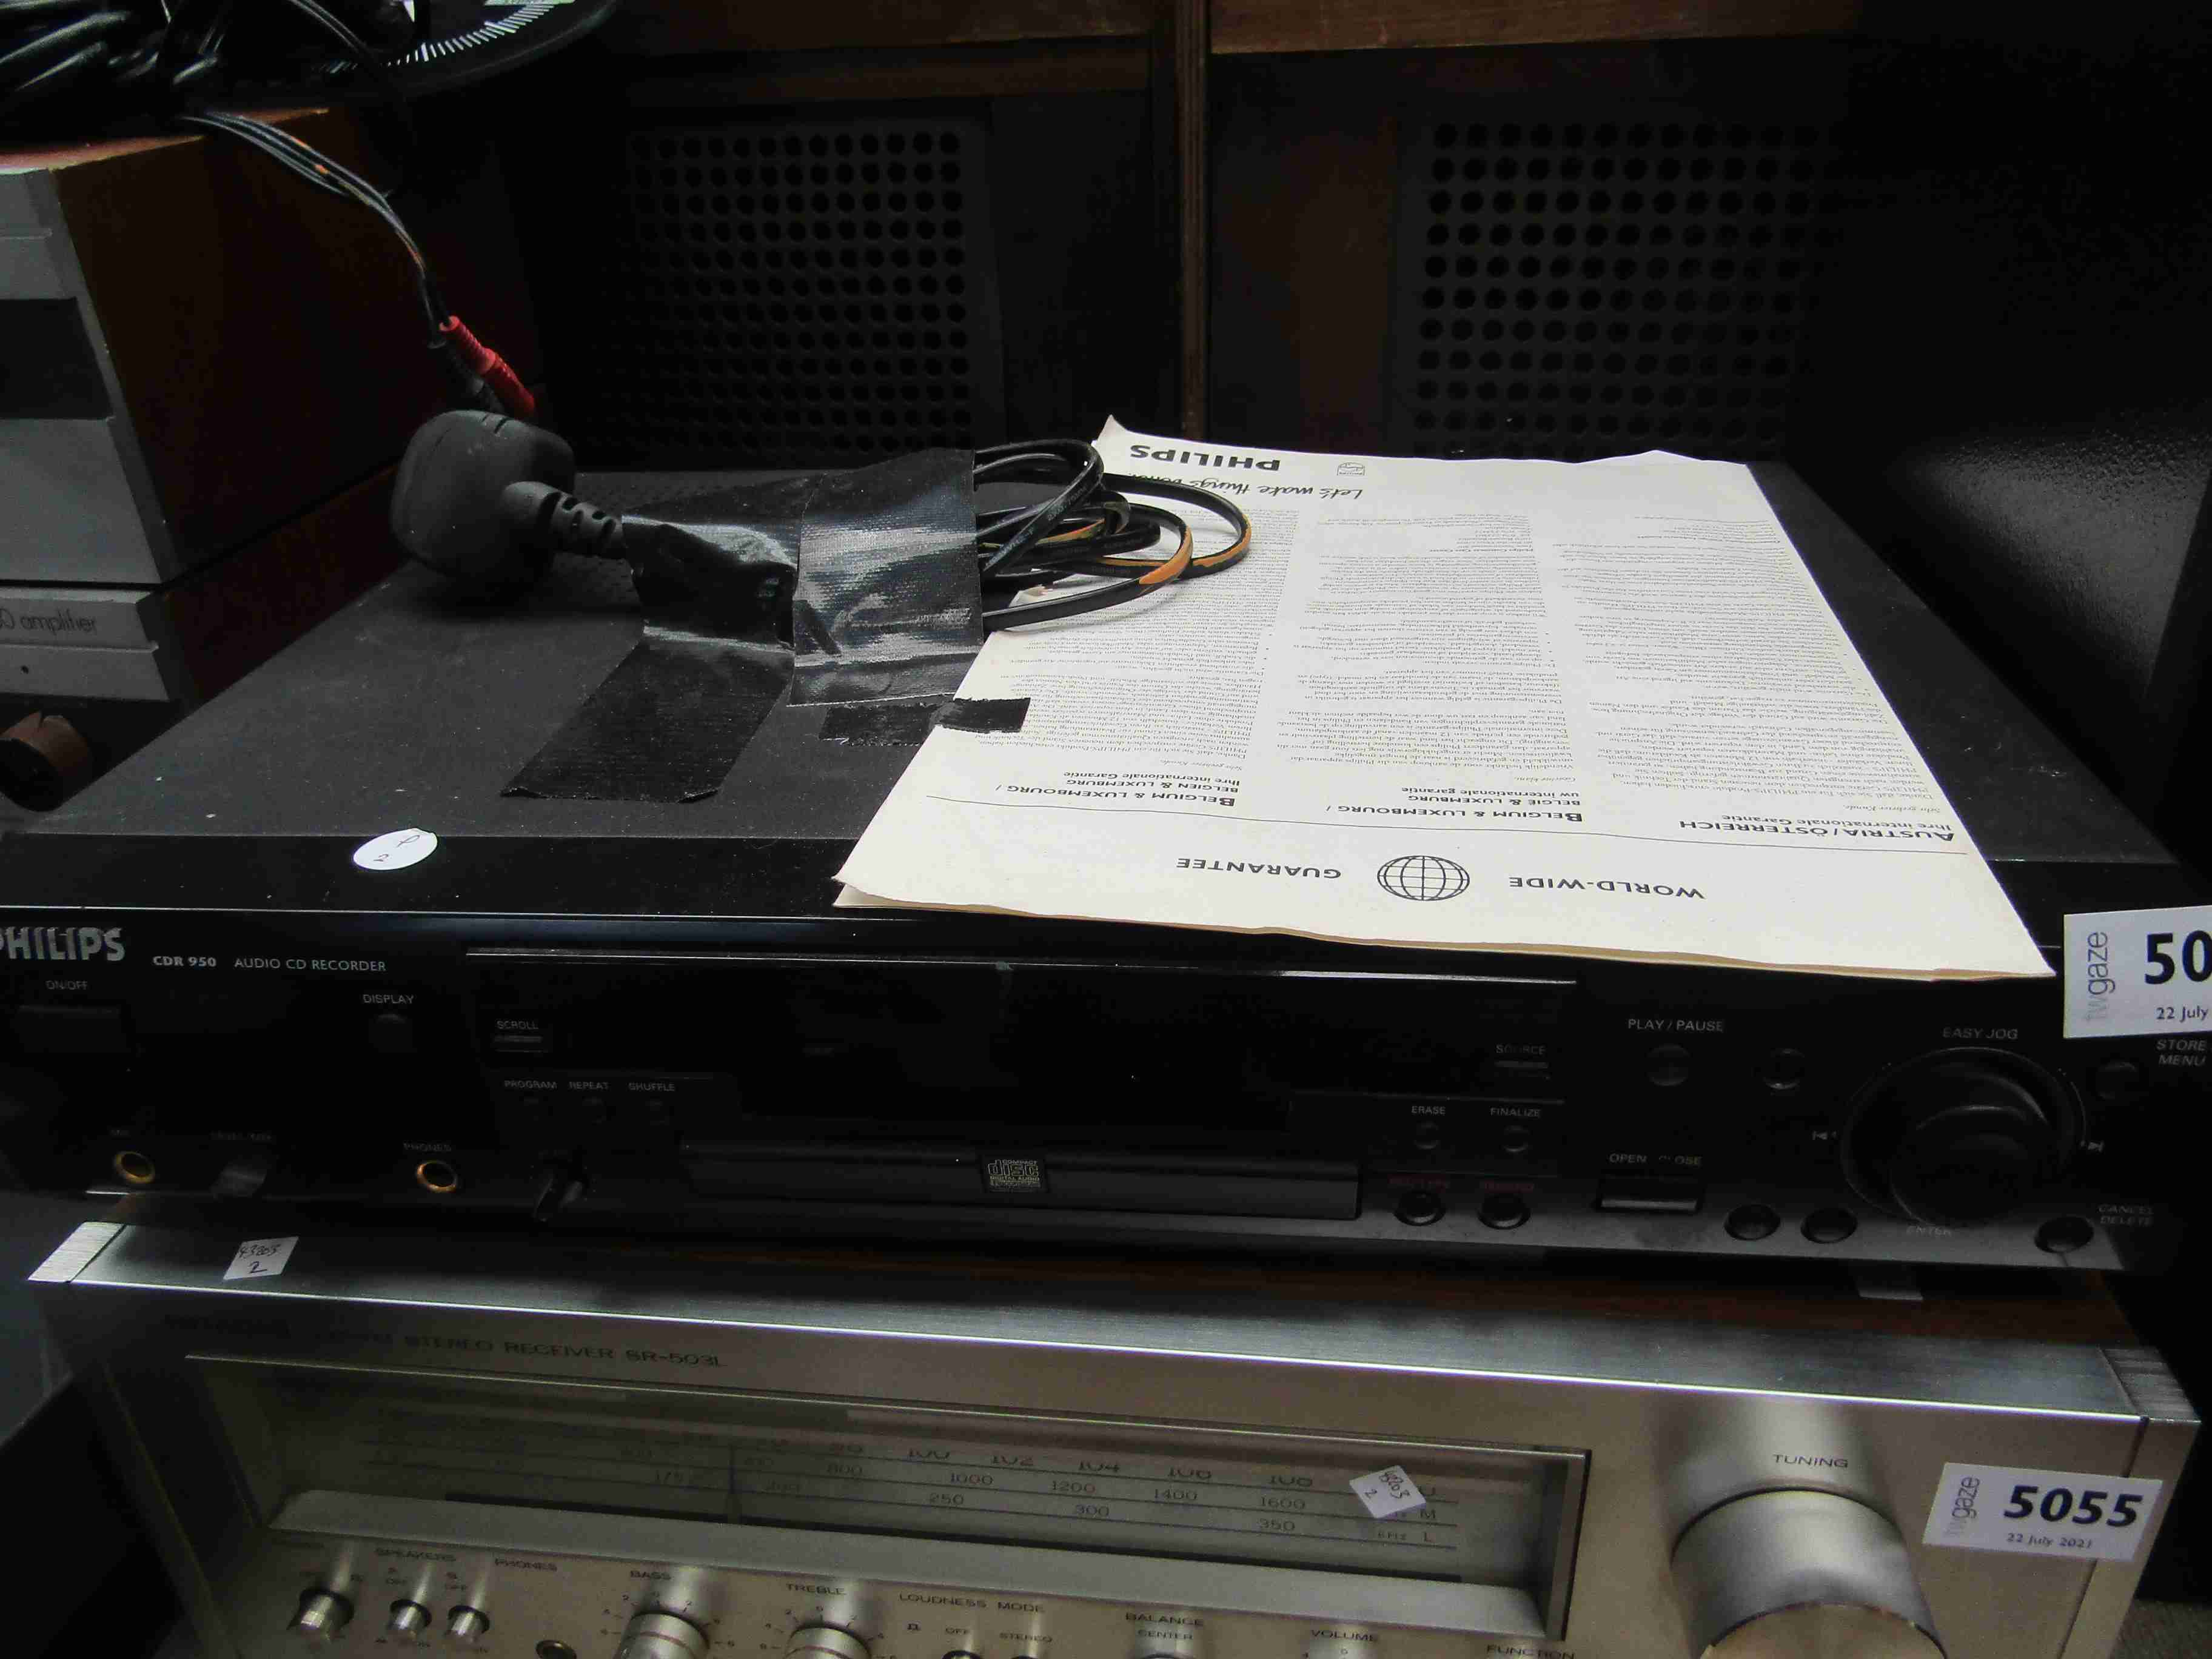 A Philips CDR 950 audio CD recorder